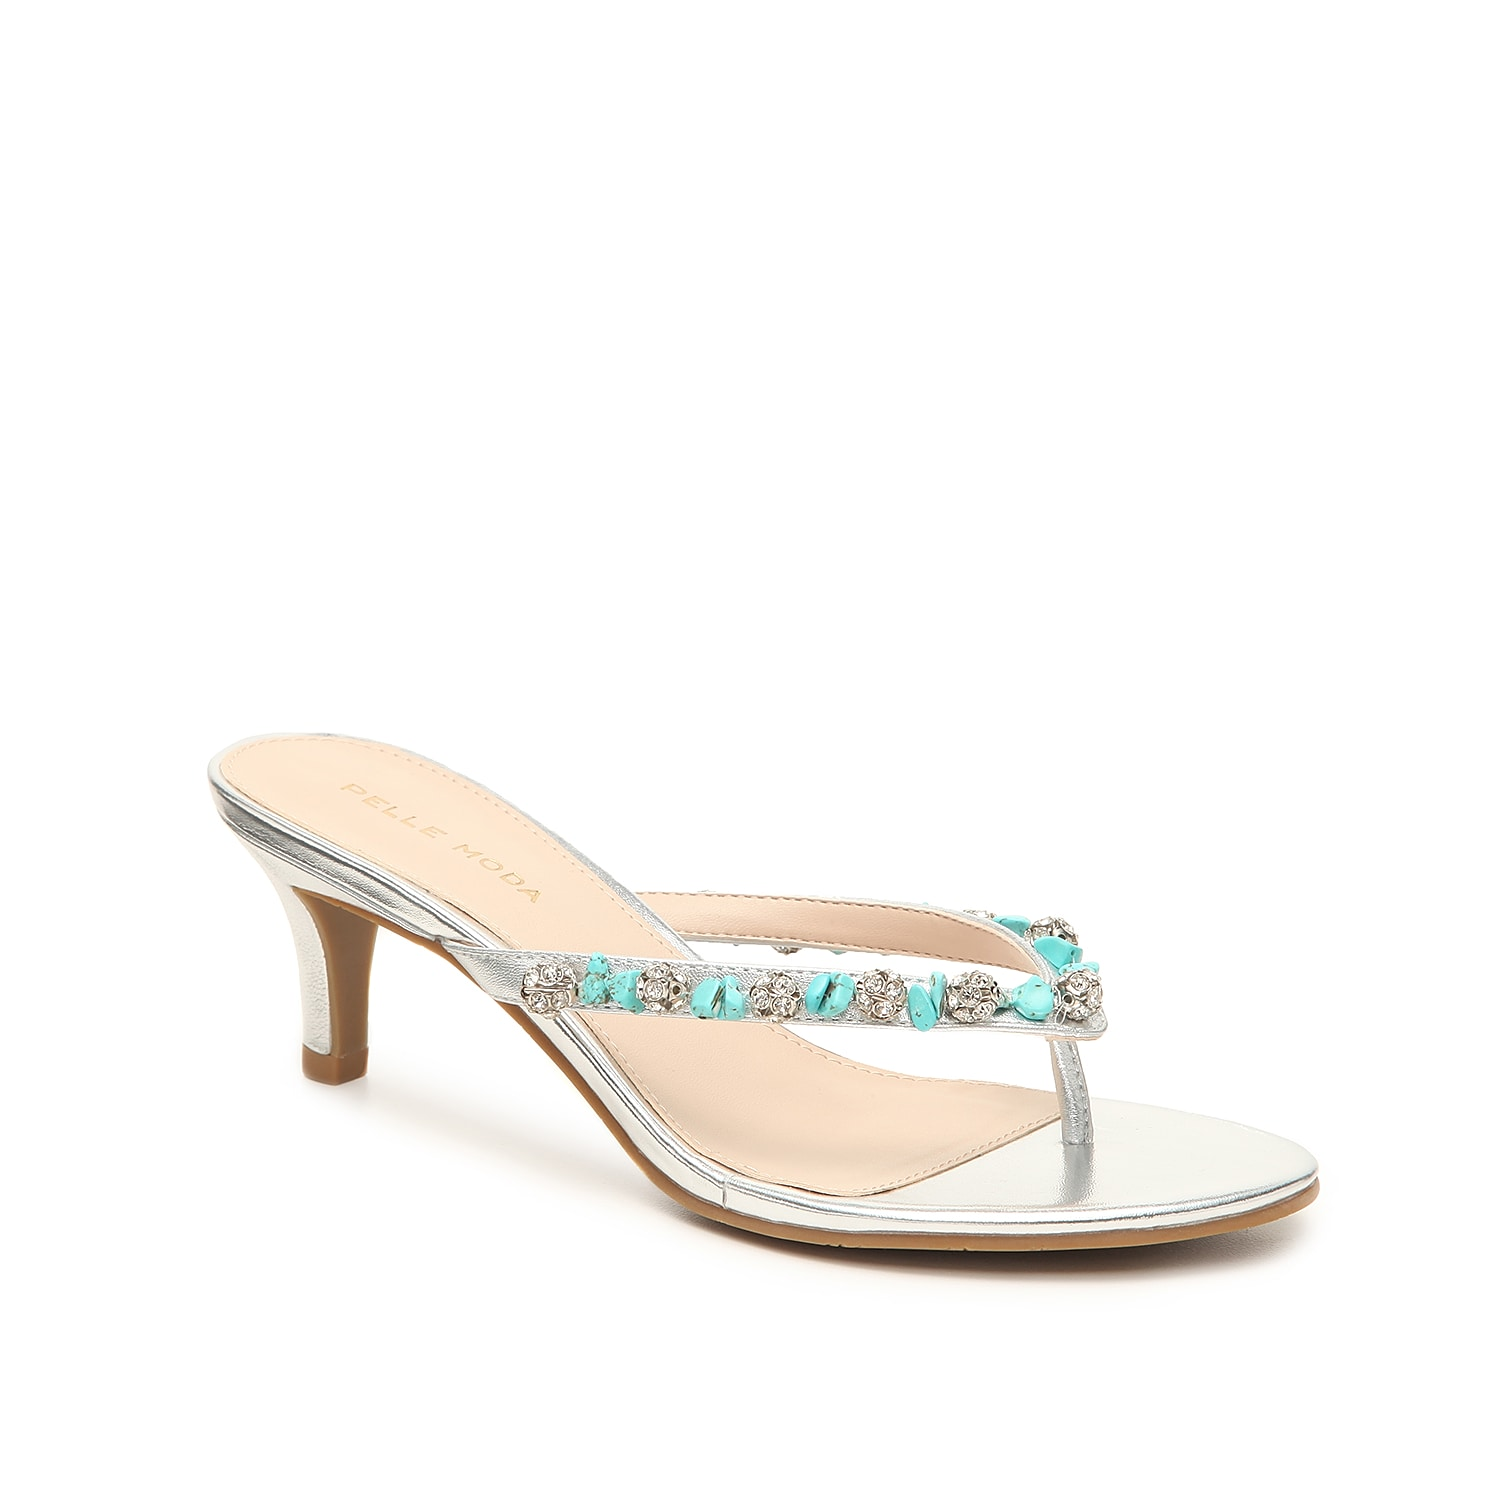 The Stella sandal from Pelle Moda will fulfill your shoe requirements. The slip-on styling and rock and stud embellishments will give your ensemble a stylish finishing touch!